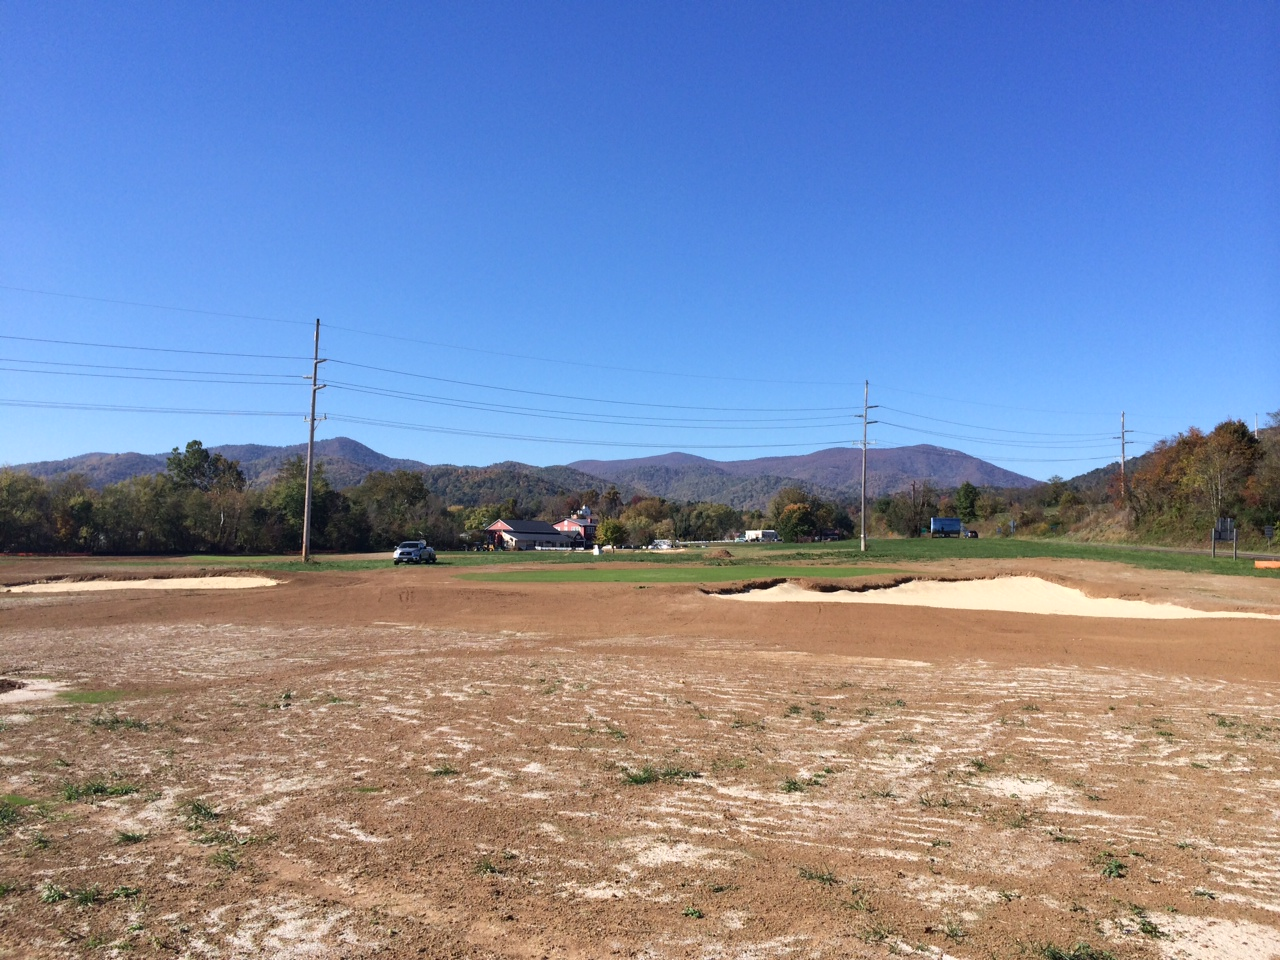 Hole 8 of the Schoolhouse Nine during grow-in. (Image: Mike McCartin)